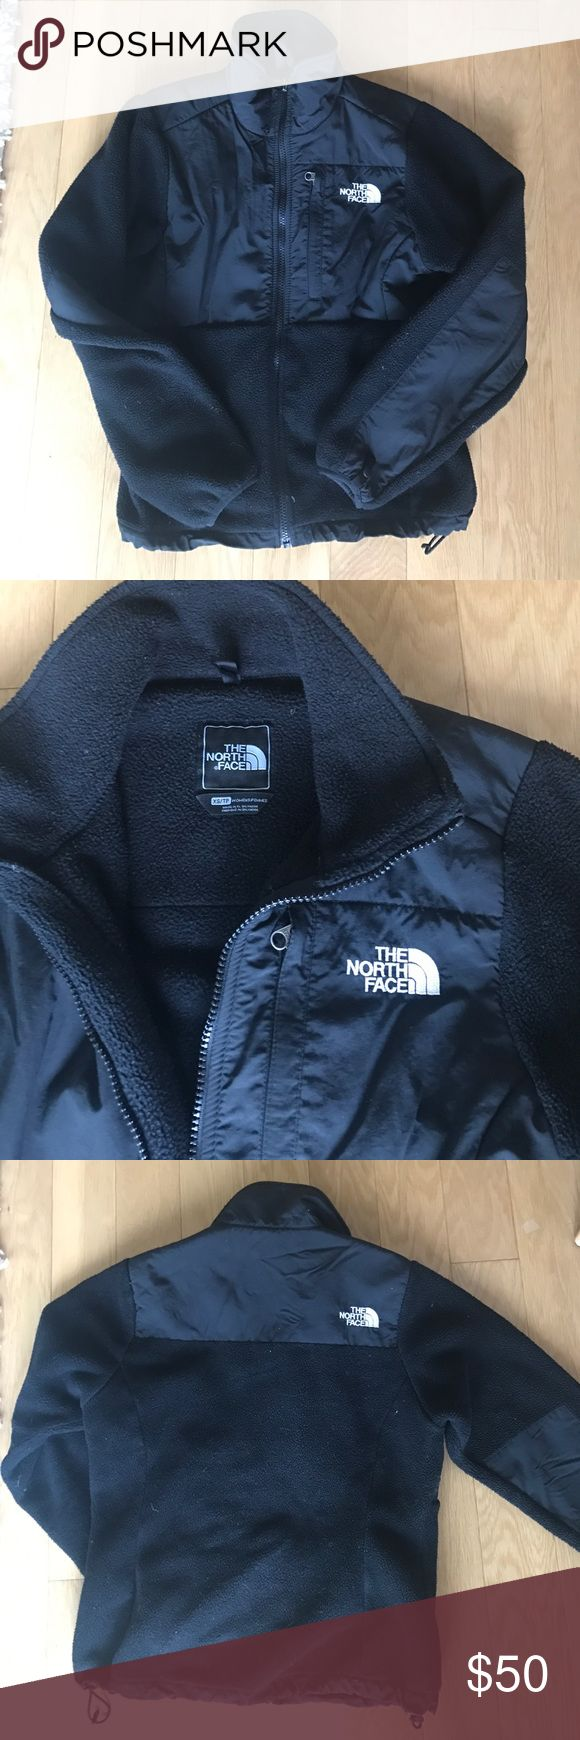 Classic Black North Face Fleece Zip Up Jacket Gently used women's black fleece zip up jacket. Cute + so warm! North Face Jackets & Coats